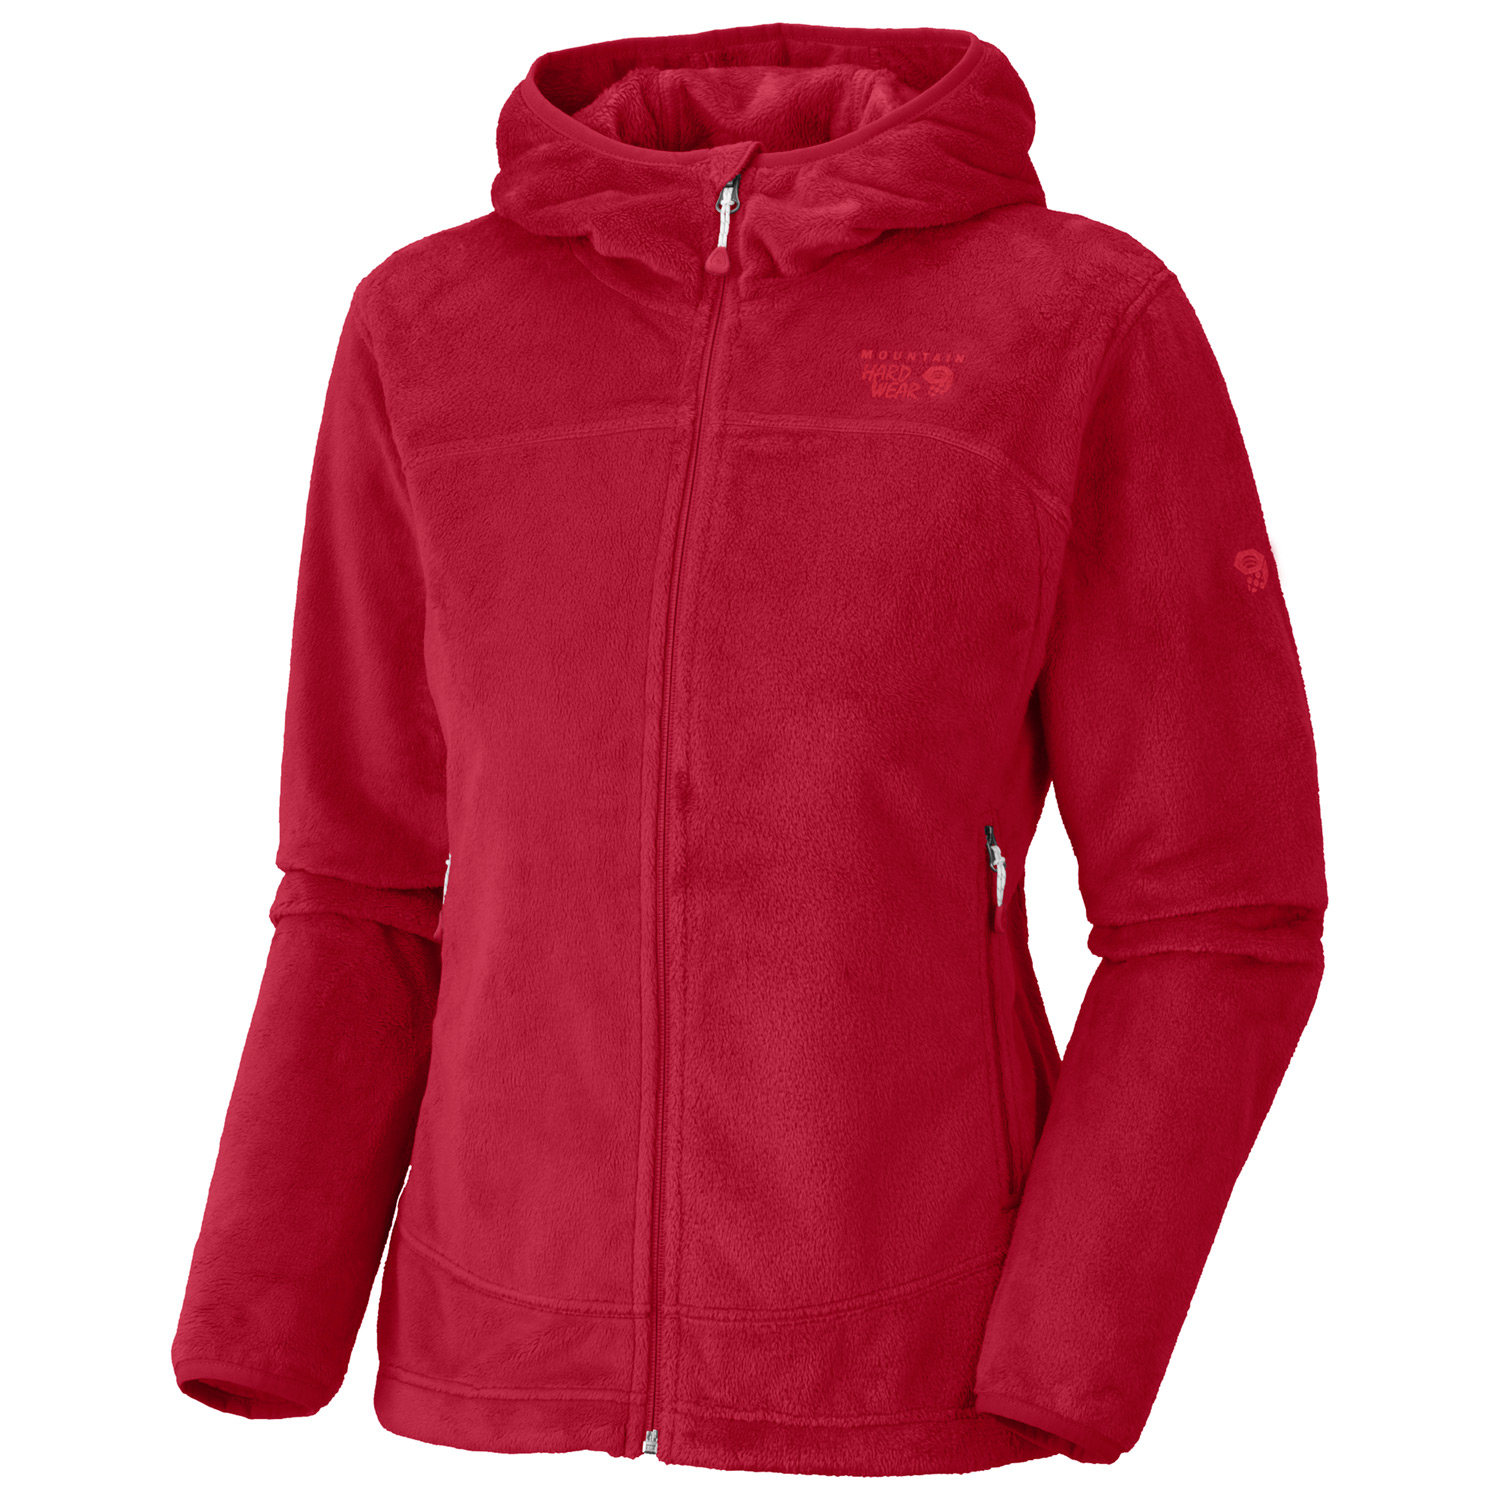 Soft luscious and lightweight, with feminine lines and an athletic fit High loft velboa fleece is super soft and feminine, and still technical.Key Features of the Mountain Hardwear Pyxis Hoody Fleece: Material: 100% polyester Voluptuous(TM) VelboaZip handwarmer pocketsFleece lined chin guardFitted hoodDual hem drawcordsFeminine athletic fitWeight: 14.7 oz - $89.95